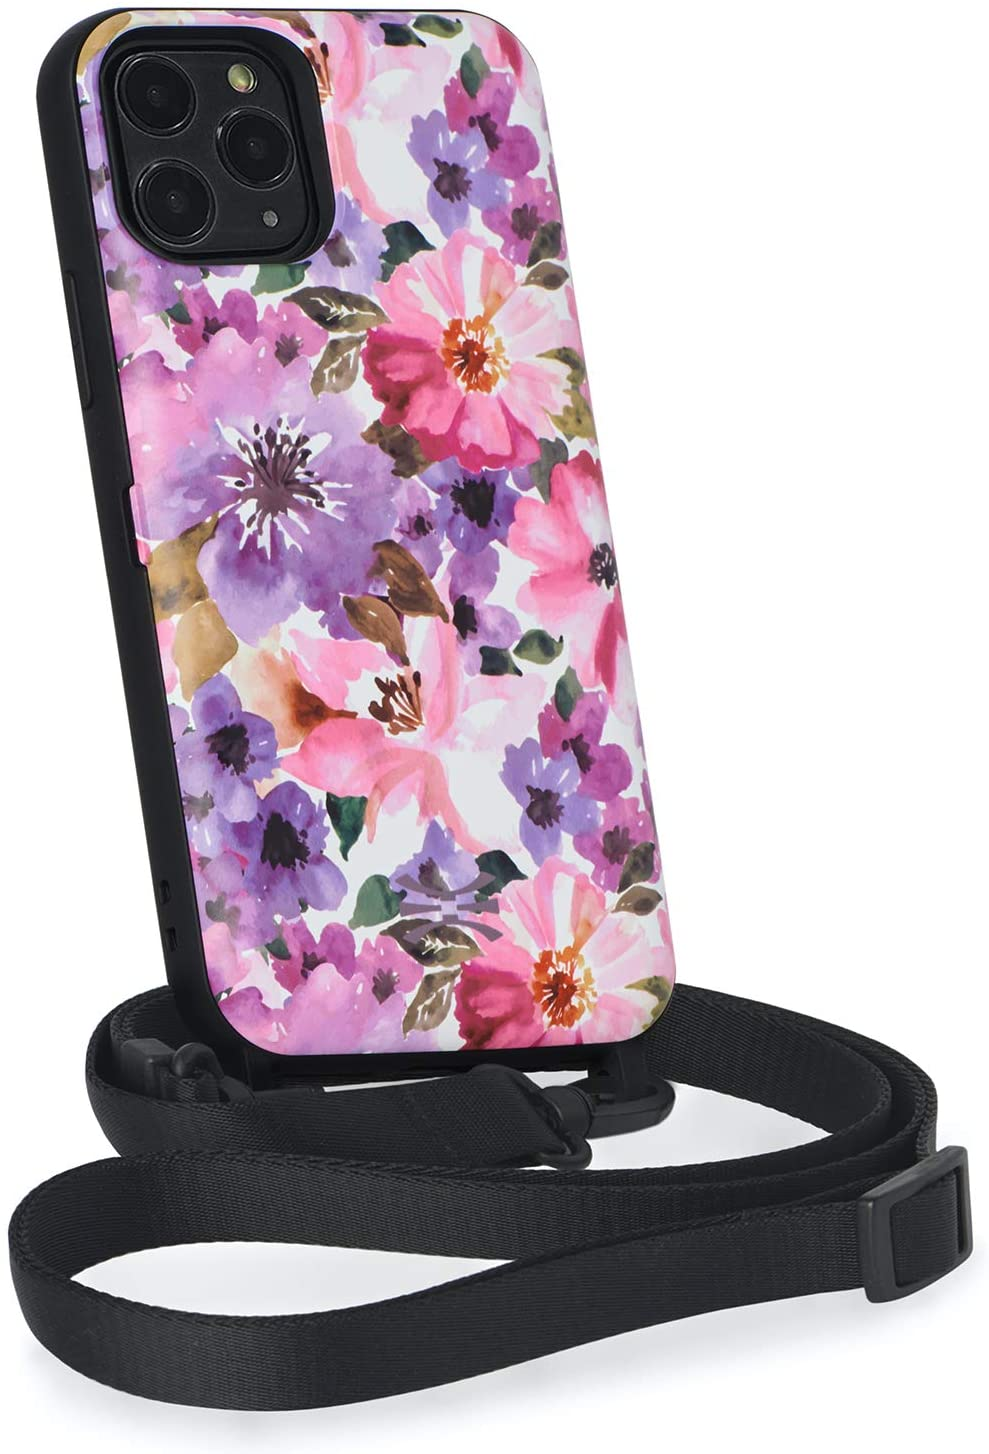 TORU CX Cross iPhone 11 Pro Wallet Case Pattern Floral with Hidden Credit Card Holder ID Slot Hard Cover, Crossbody Strap, Mirror & Lightning Adapter for Apple iPhone 11 Pro (2019) - Garden Flowers